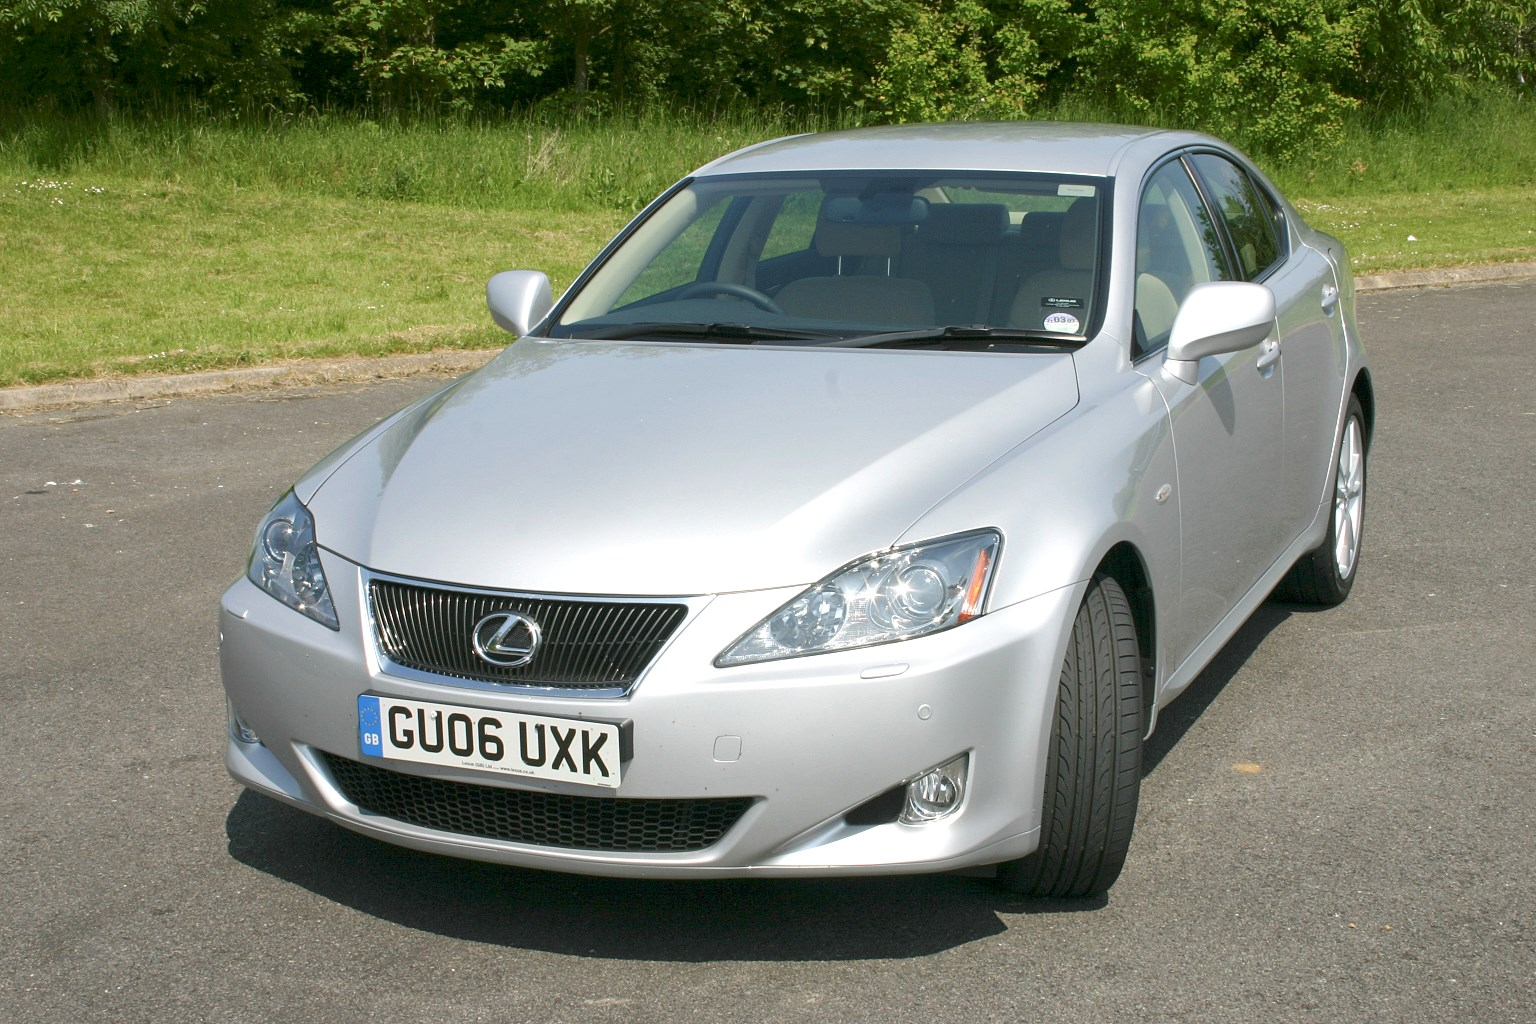 Used Lexus IS Saloon (2005 - 2012) Practicality | Parkers